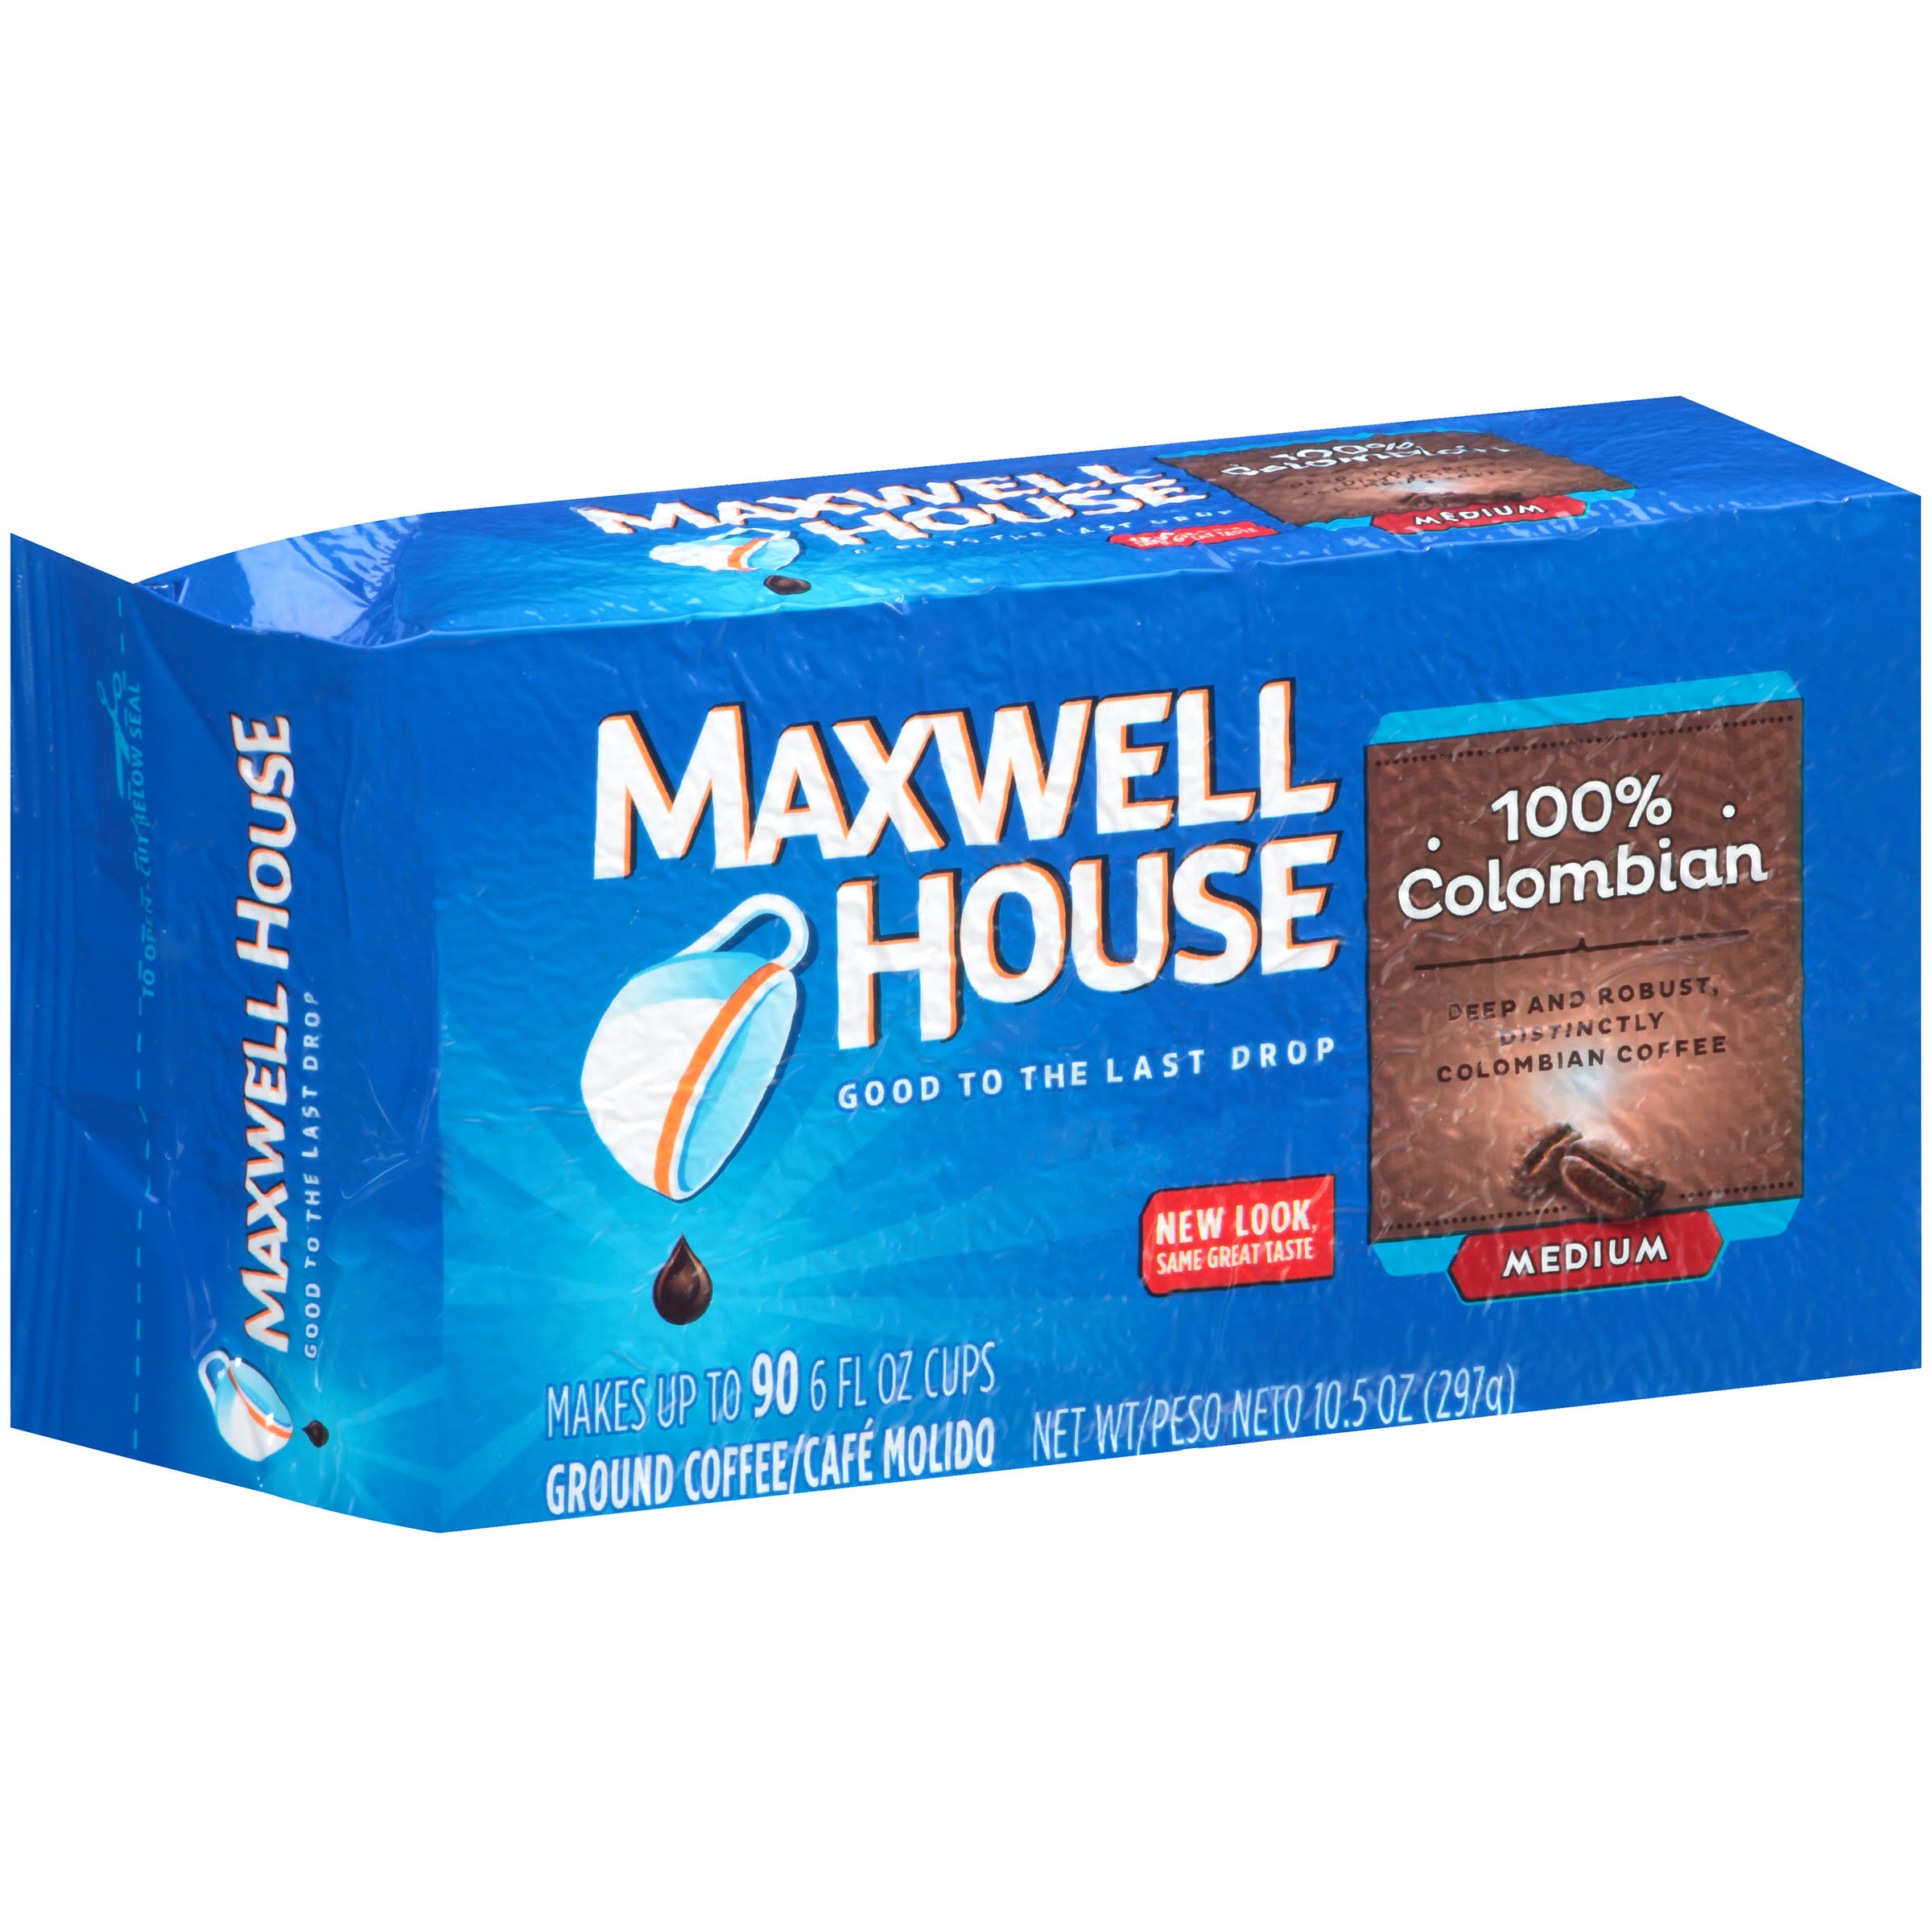 Maxwell House 100% Colombian Medium Ground Coffee - 10.5oz